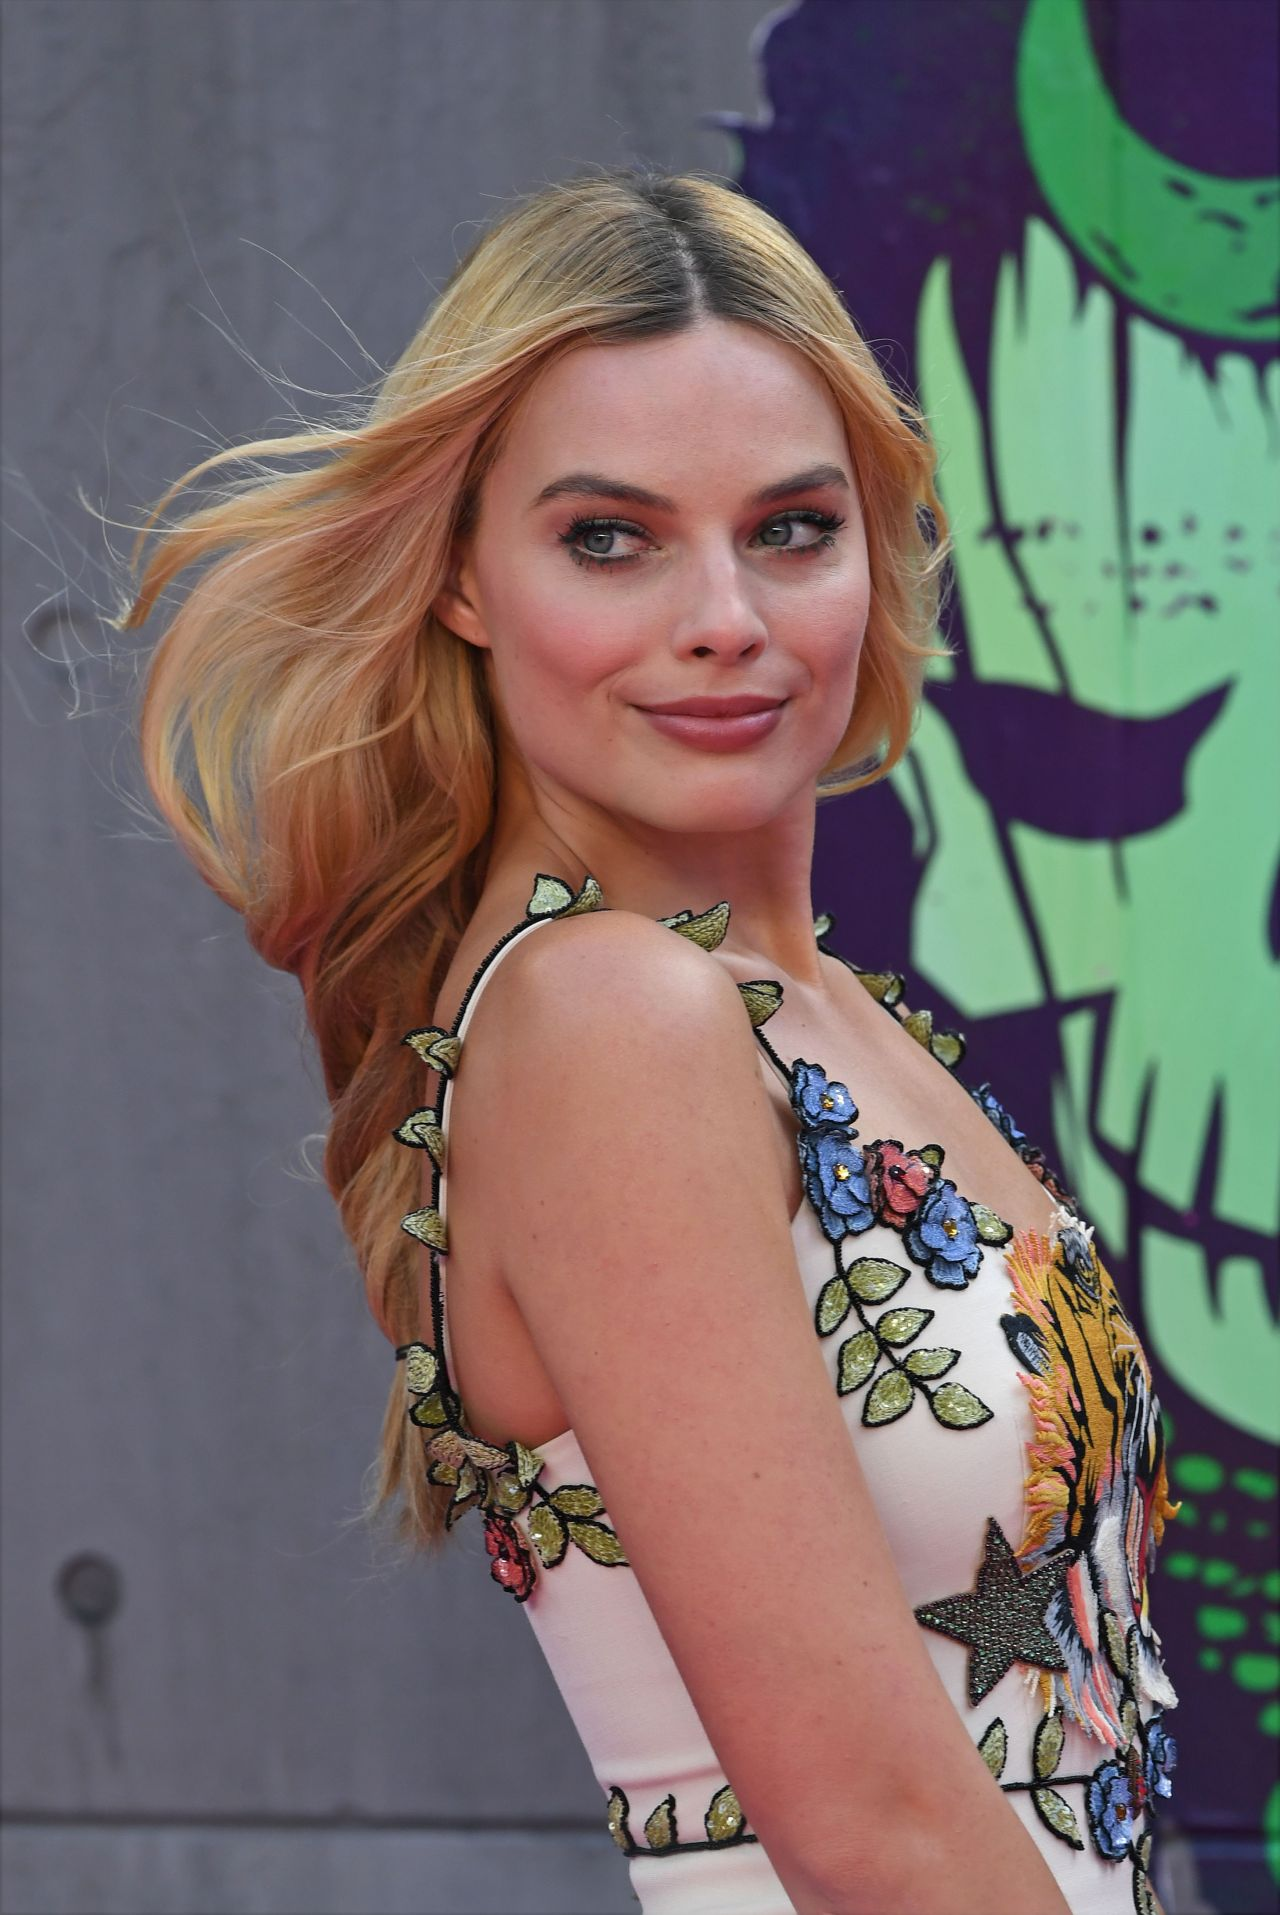 Margot Robbie Suicide Squad Premiere In London 8 3 2016